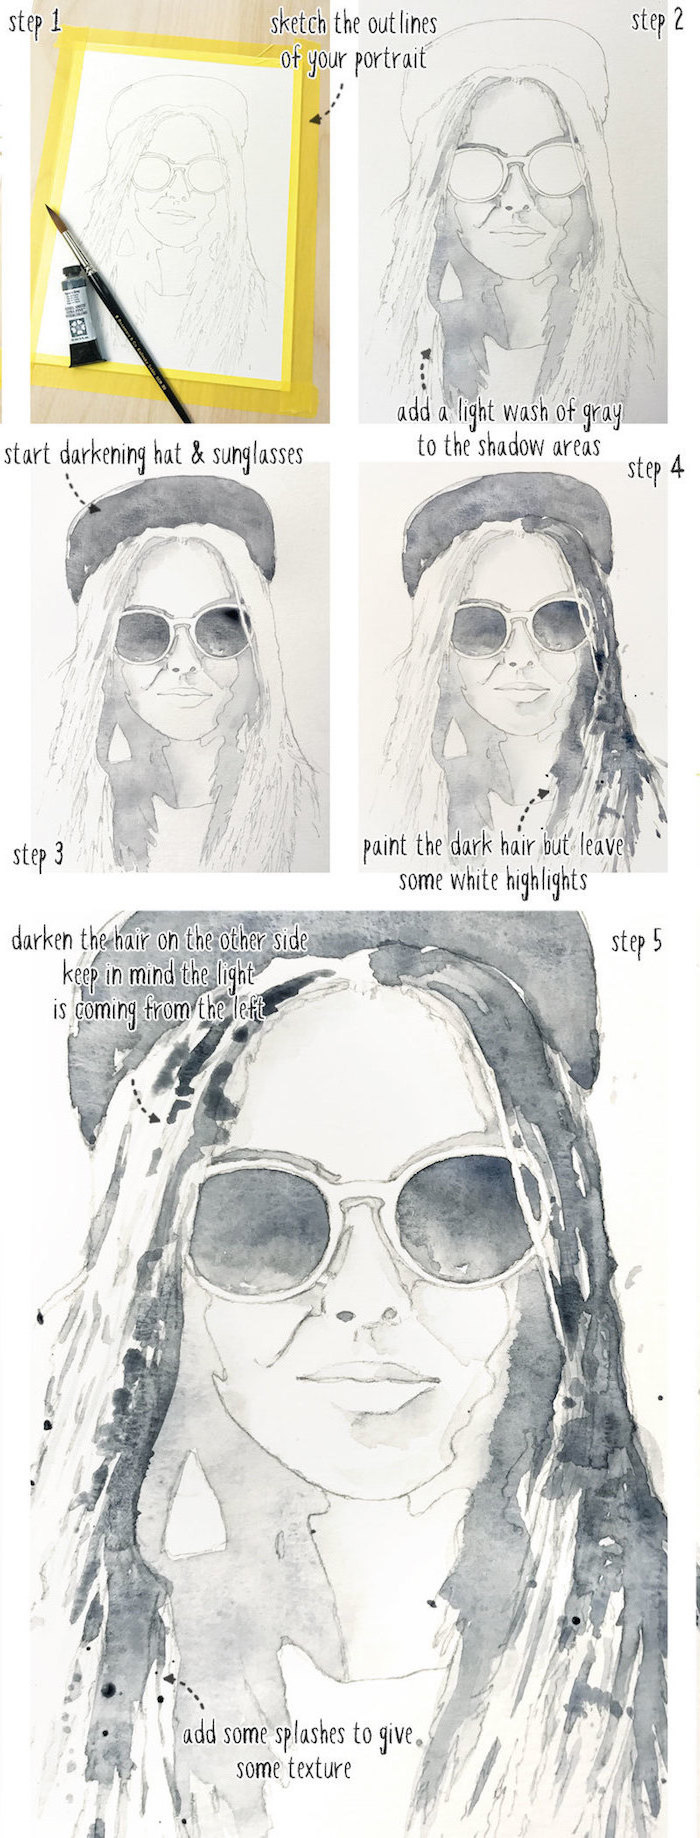 step by step diy tutorial, how to draw a girl, how to paint with watercolors, black and white watercolor painting